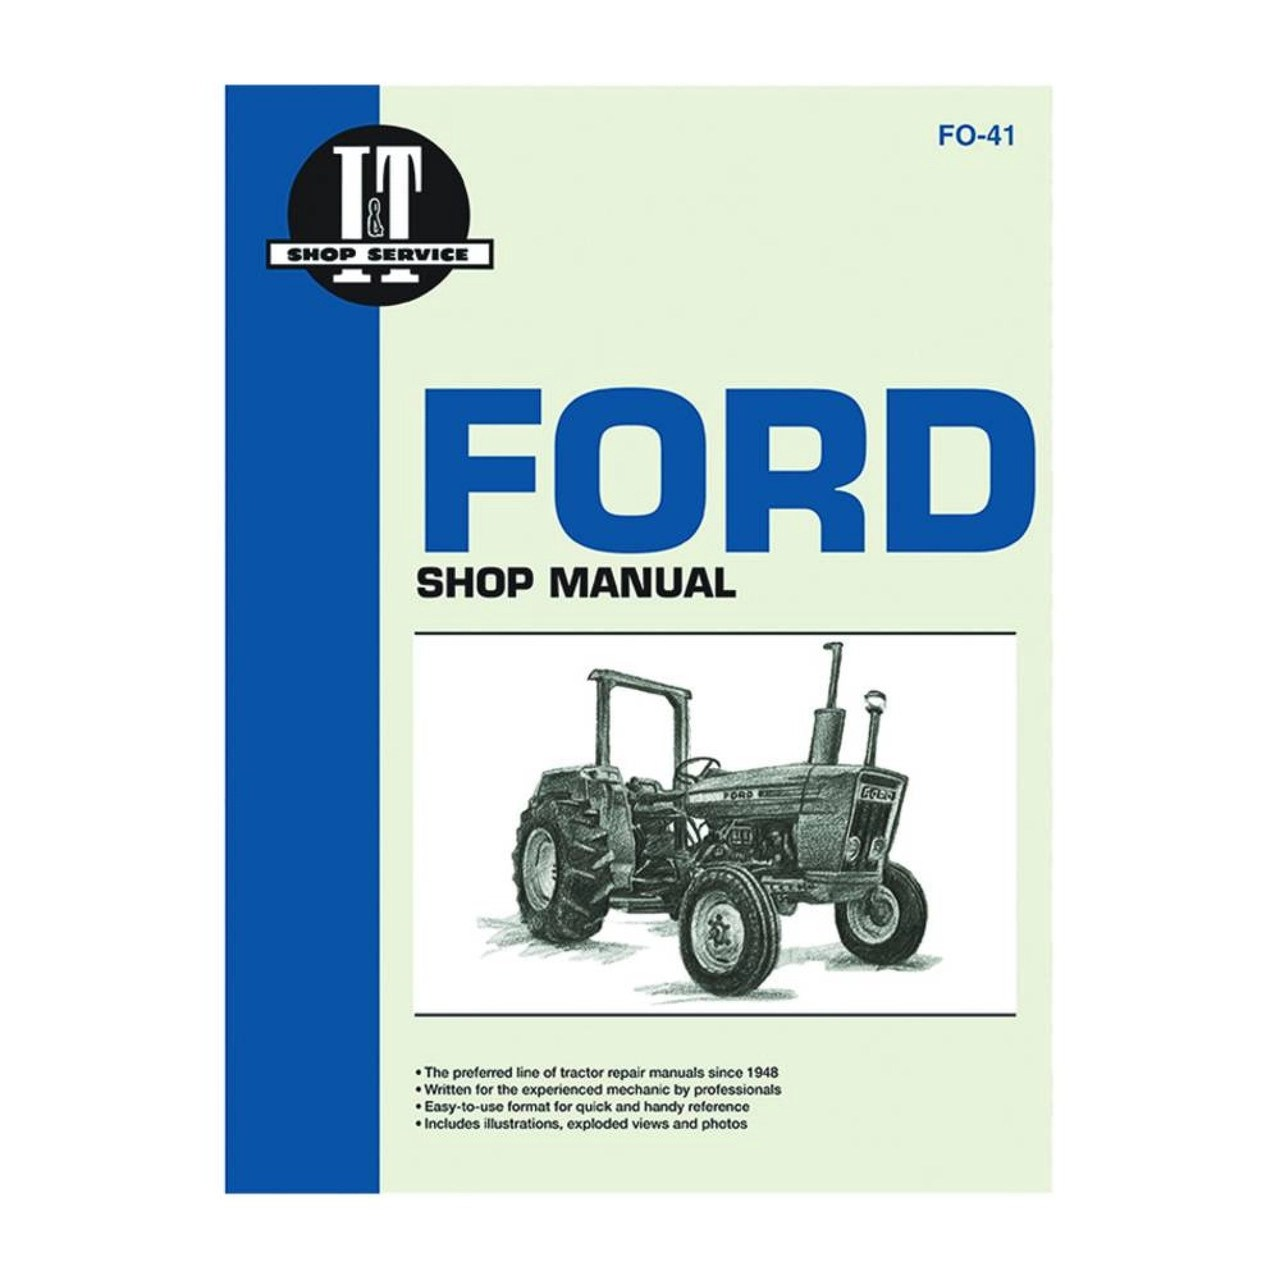 medium resolution of service manual ford new holland tractor fo 41 2310 2600 2610 3600 ford 4600 tractor parts diagram